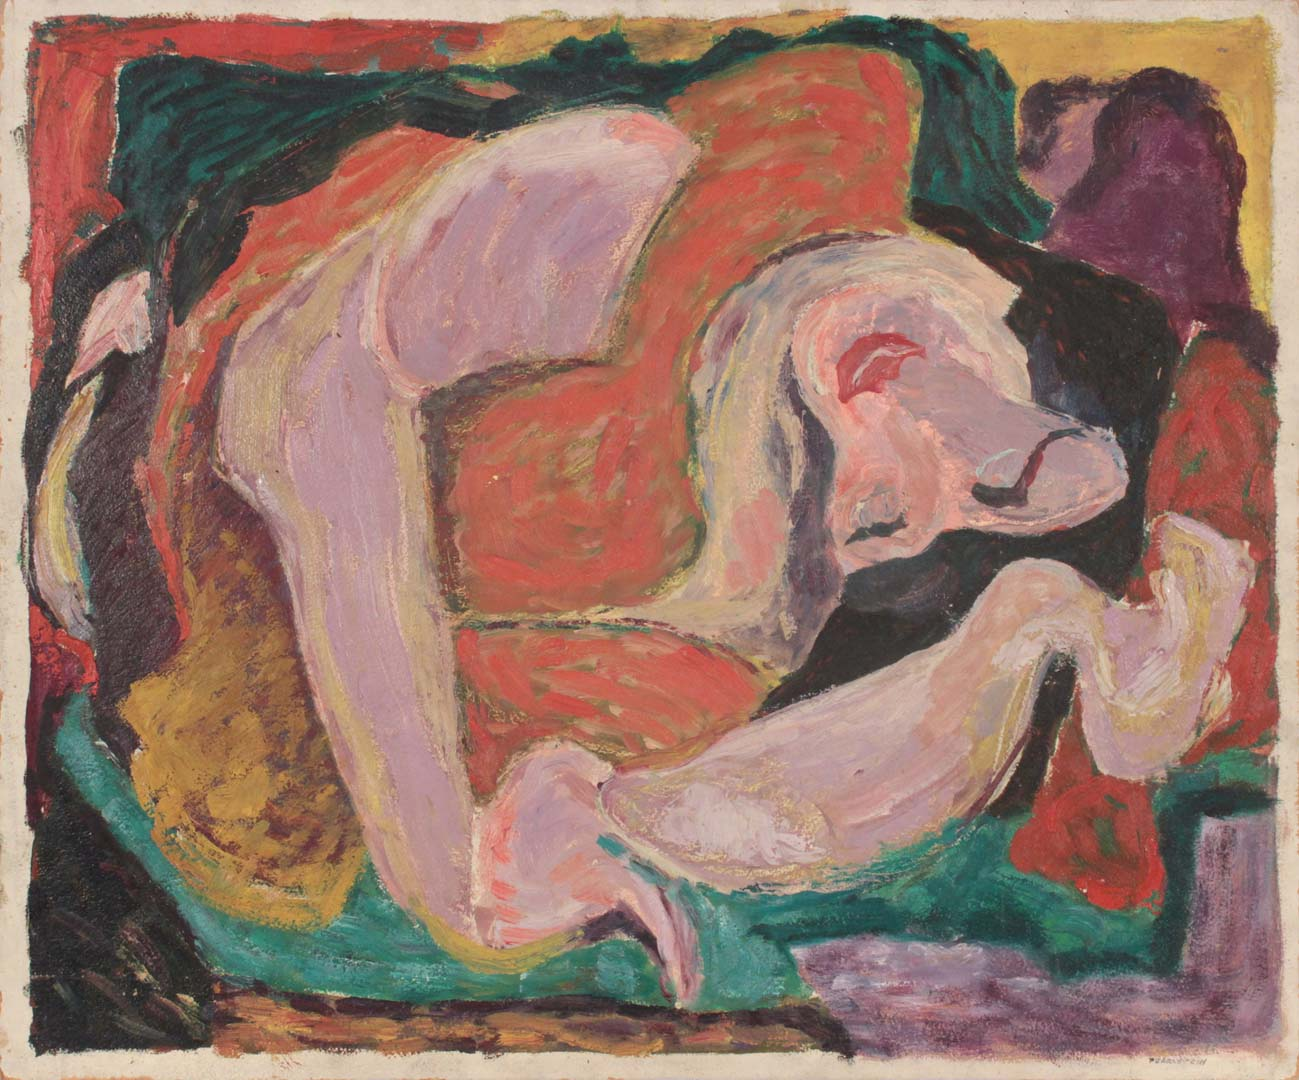 1948 Sleeping Woman Oil on Board 20 x 24